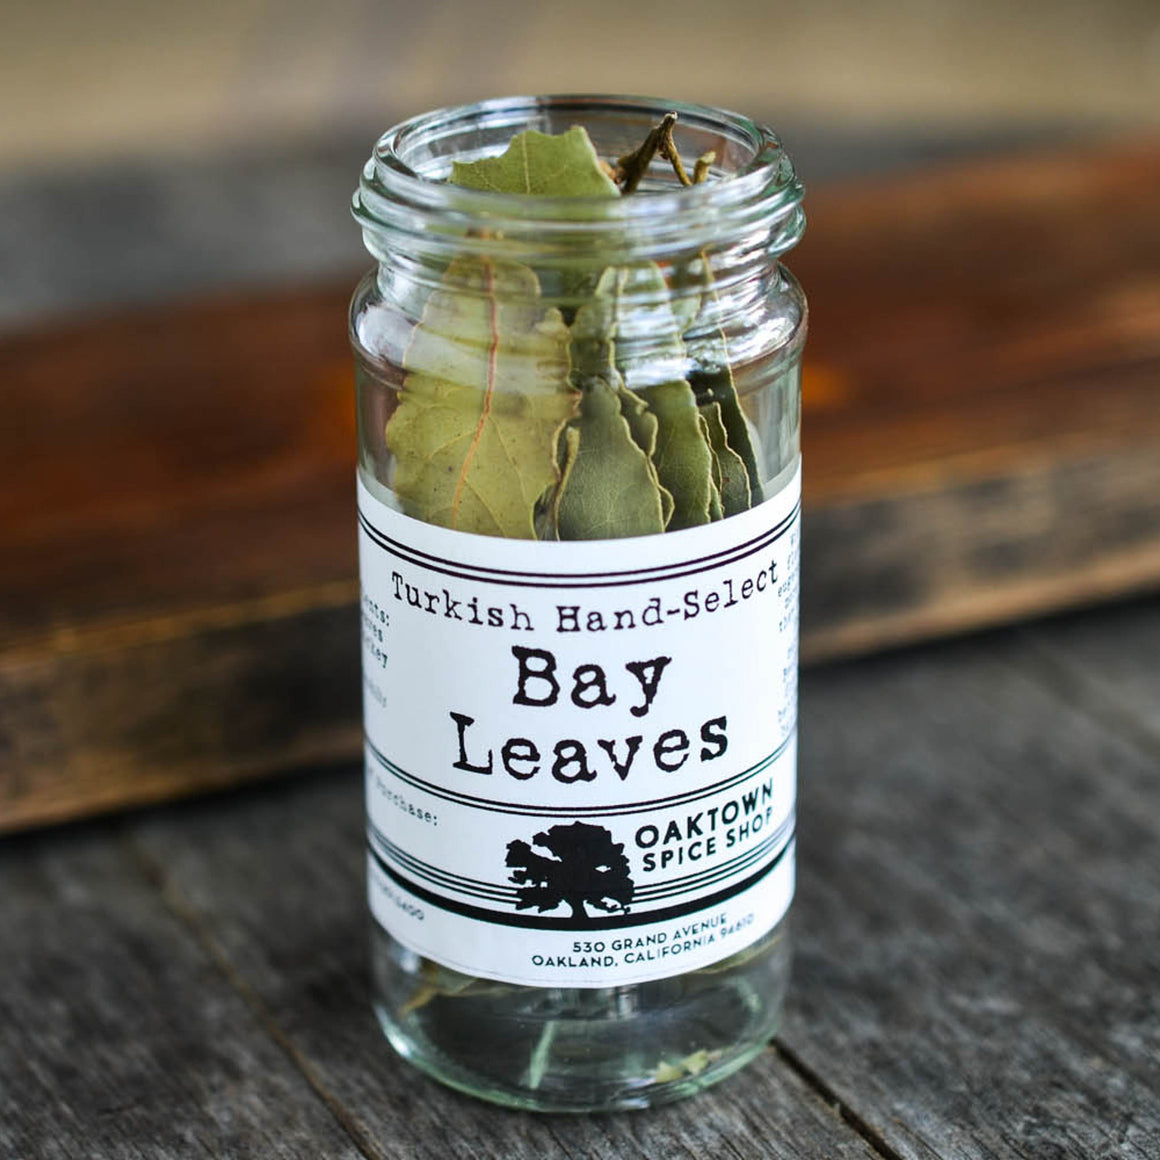 Bay Leaves, Turkish Hand-Select